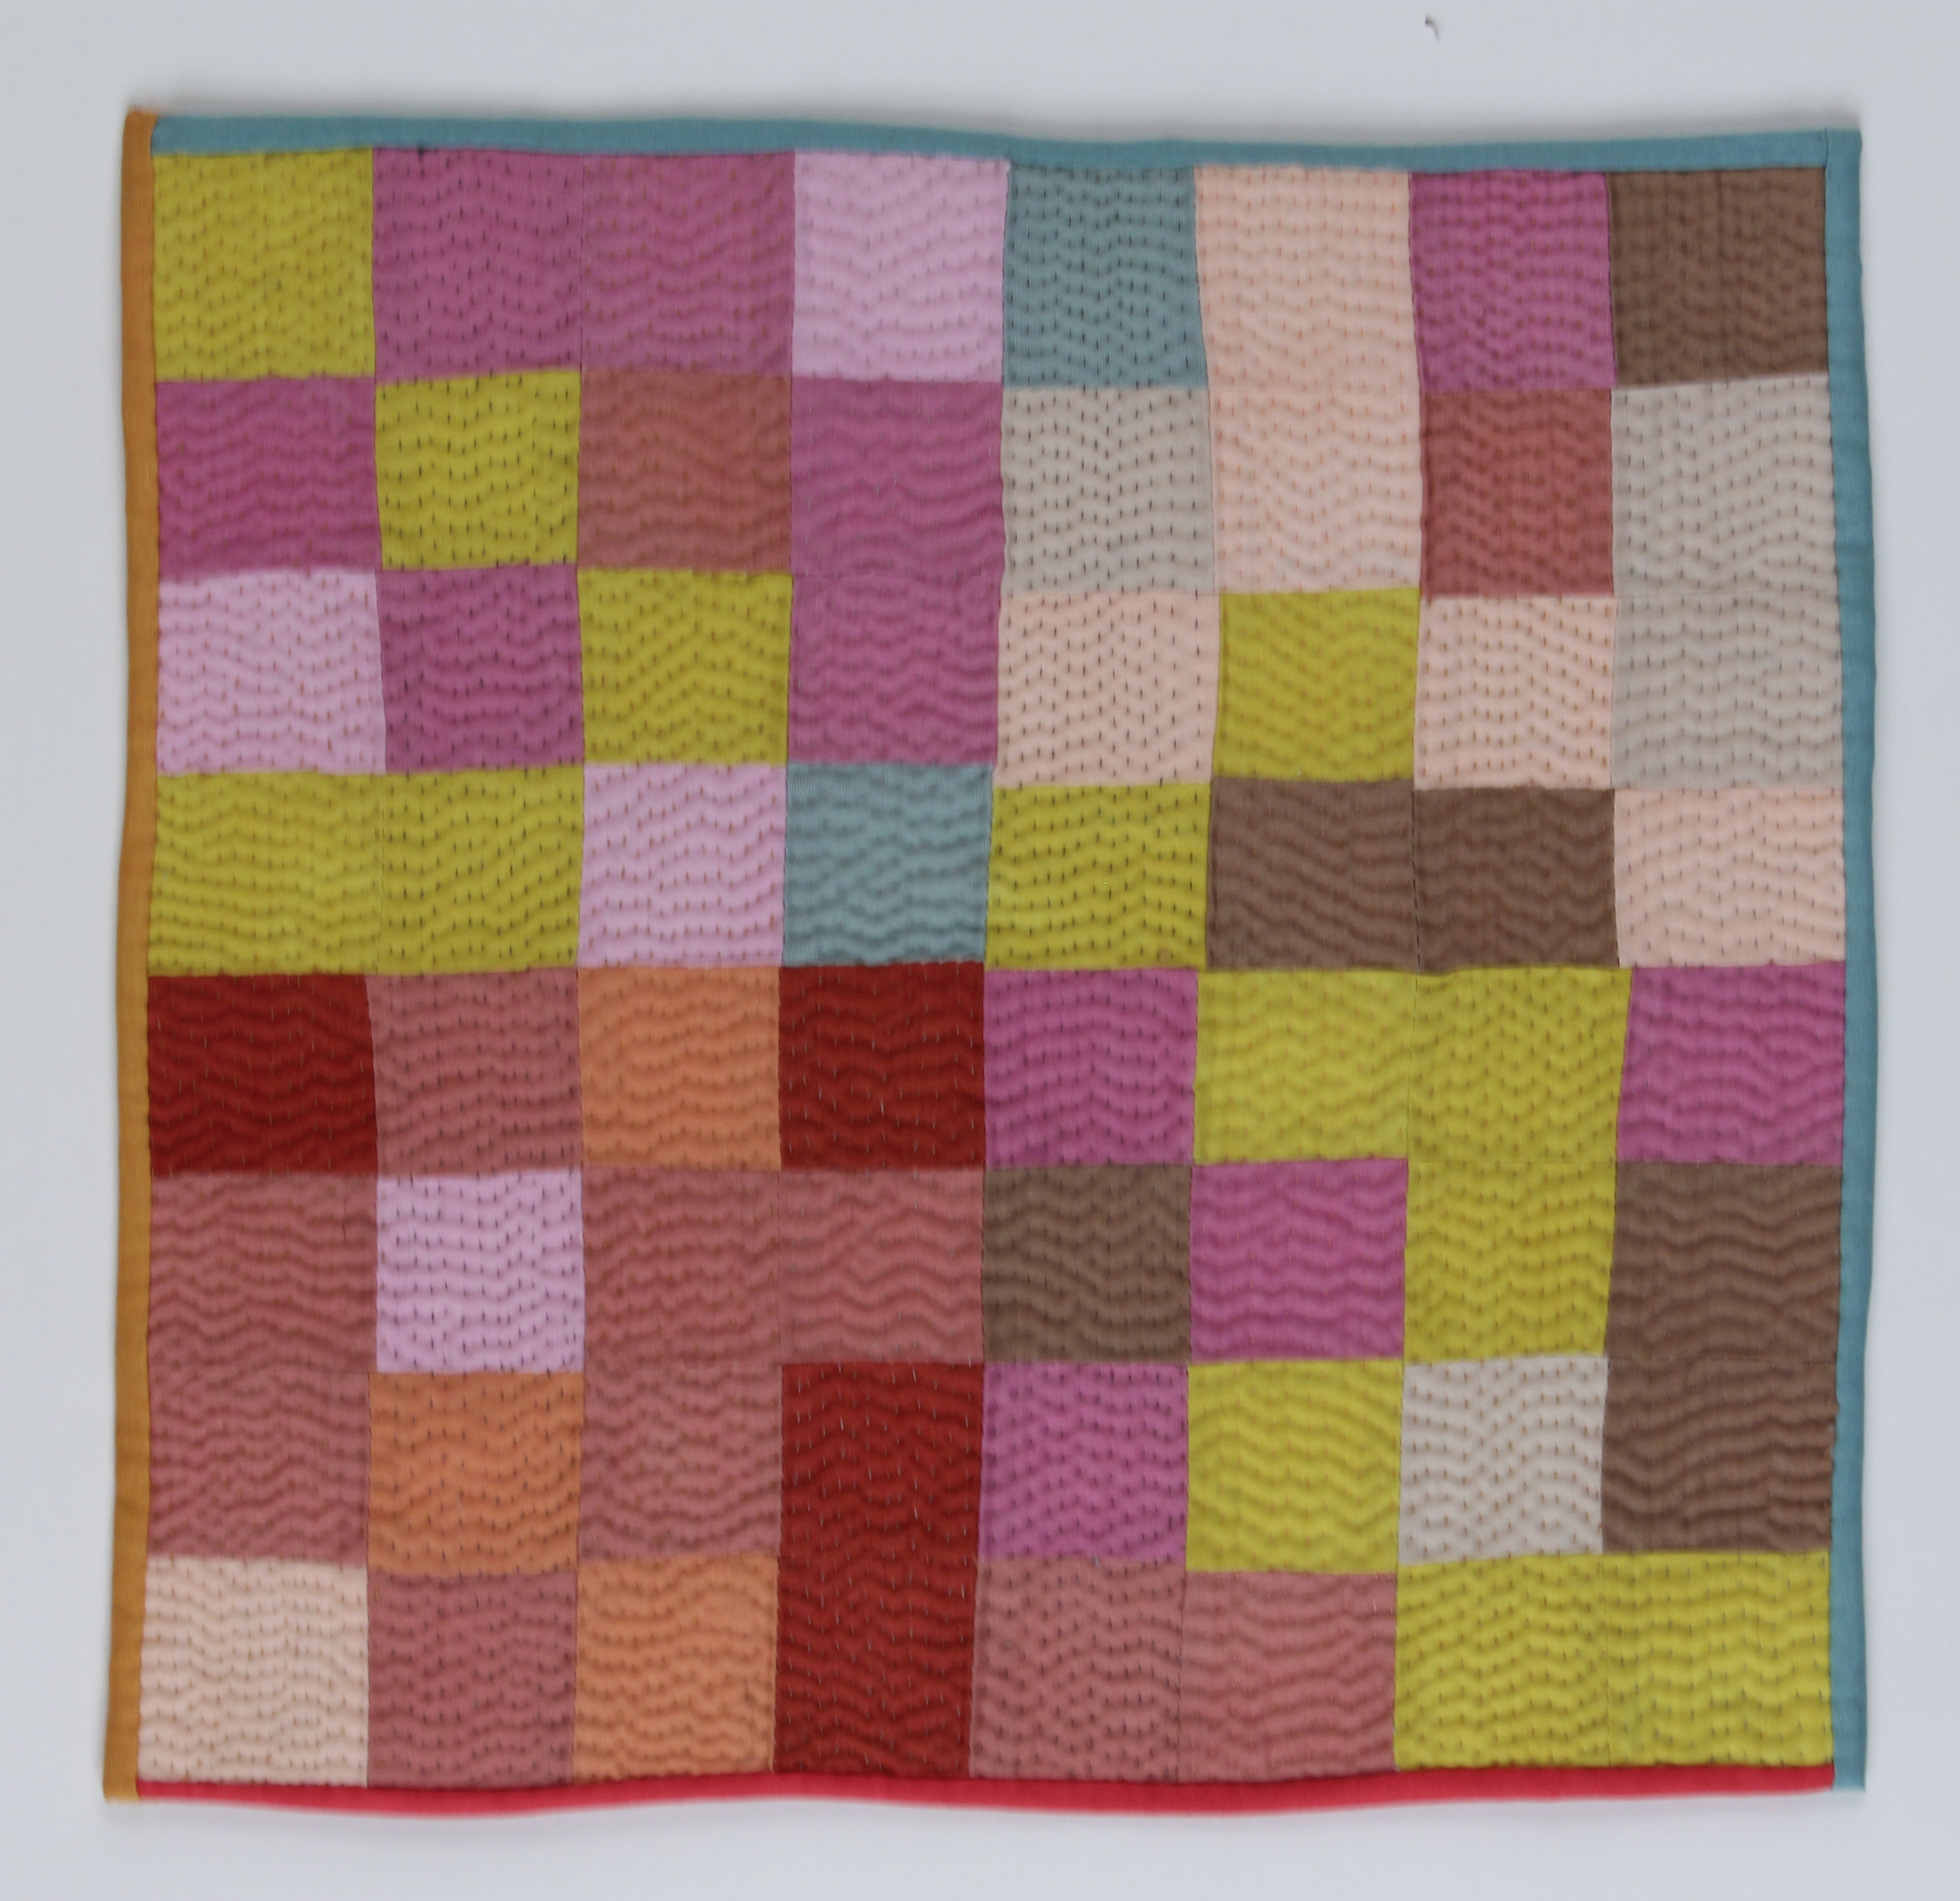 color study I , dyed fabric, pieced and quilted by hand, 2015